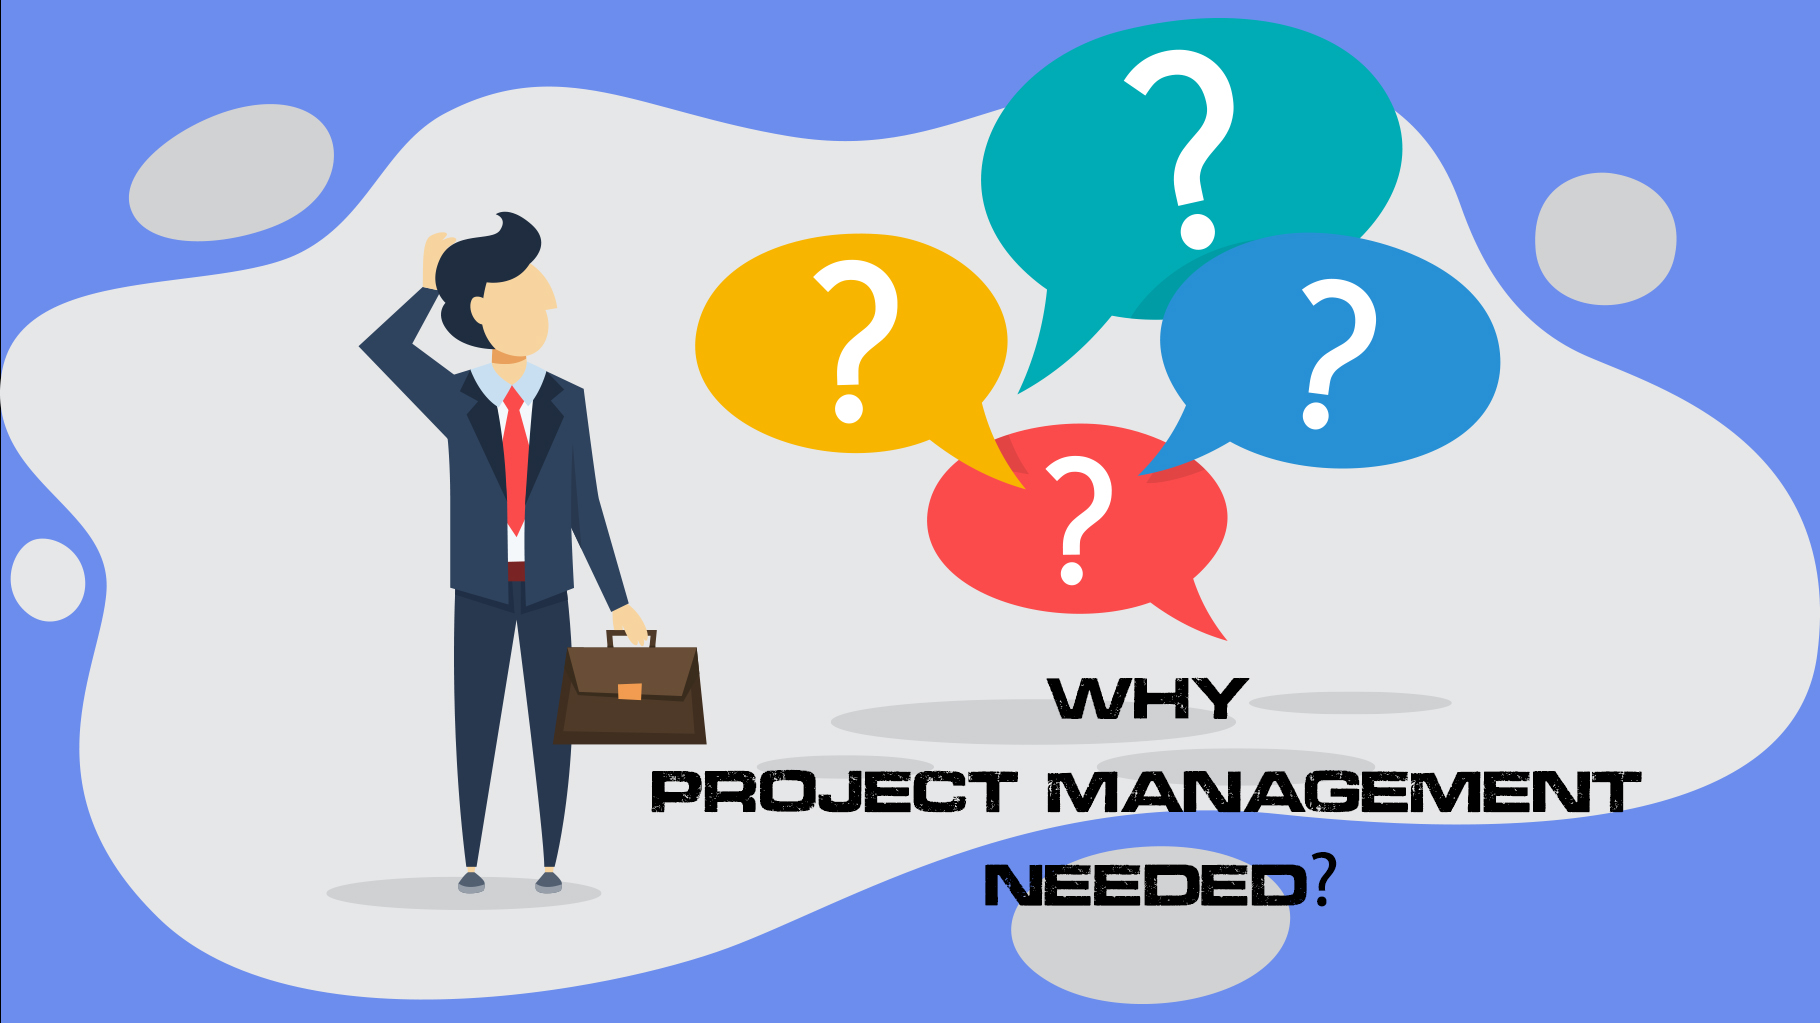 The project manager think about why project management needed